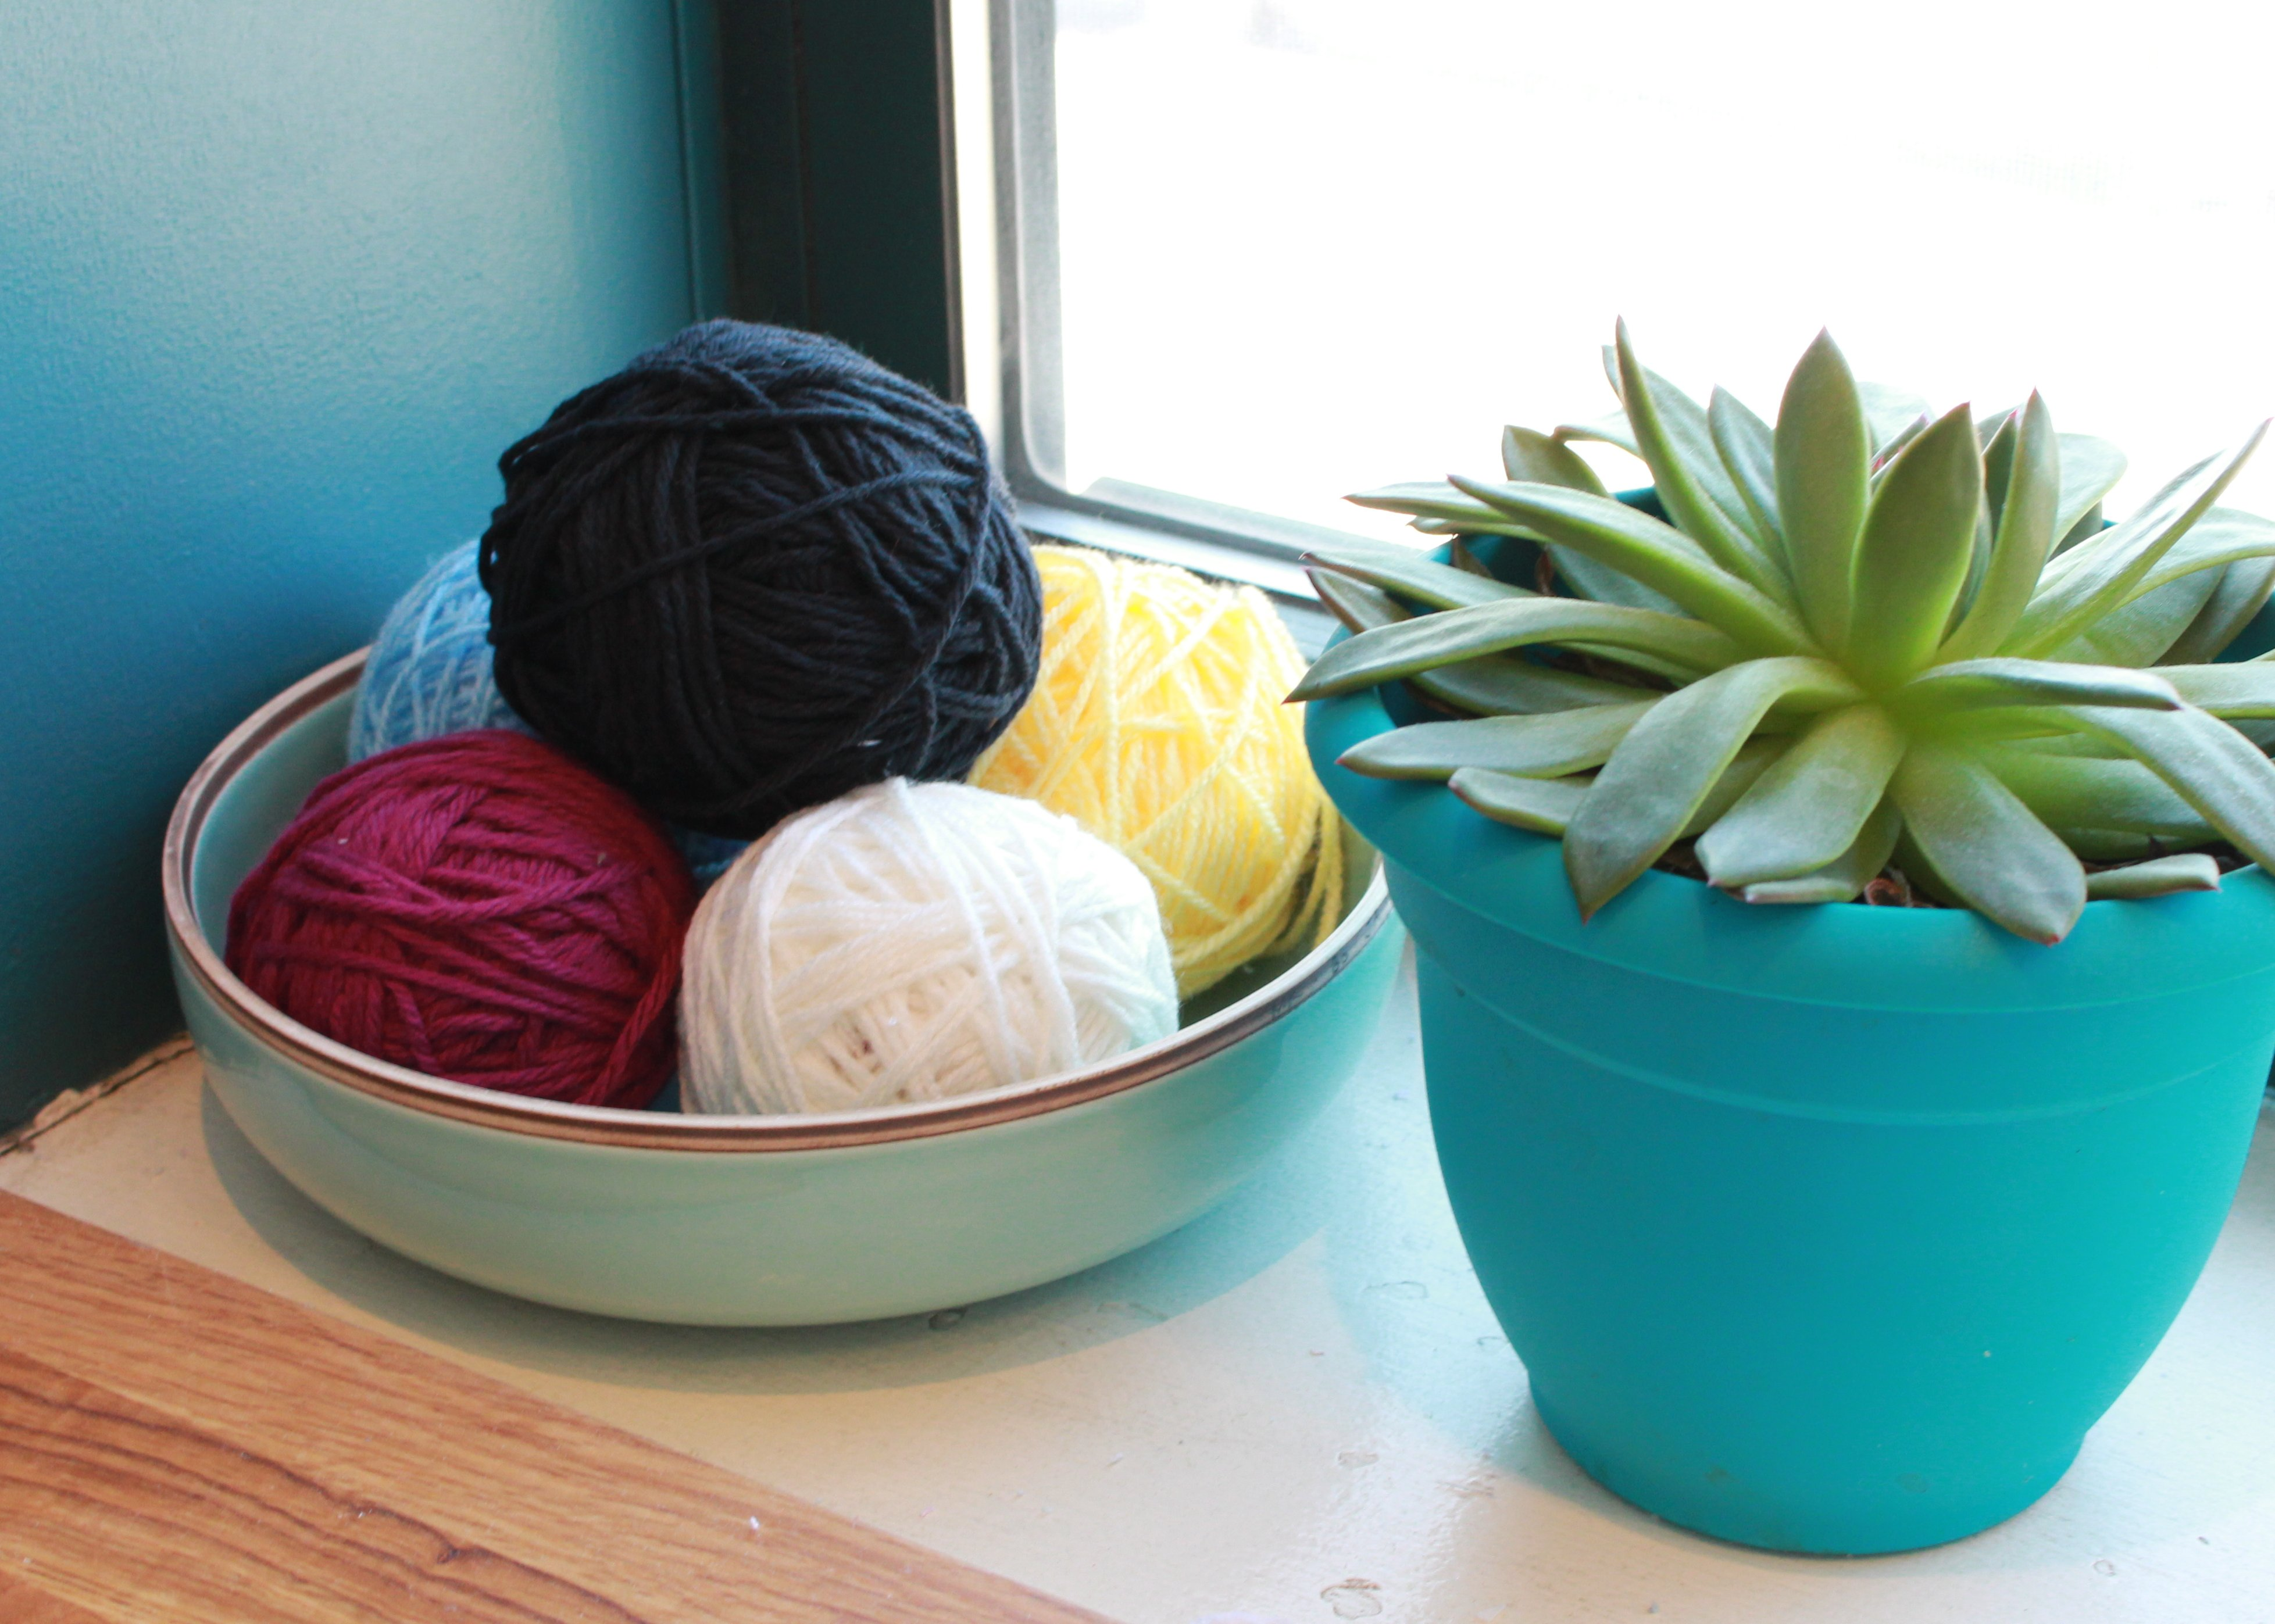 Yarn and Plant